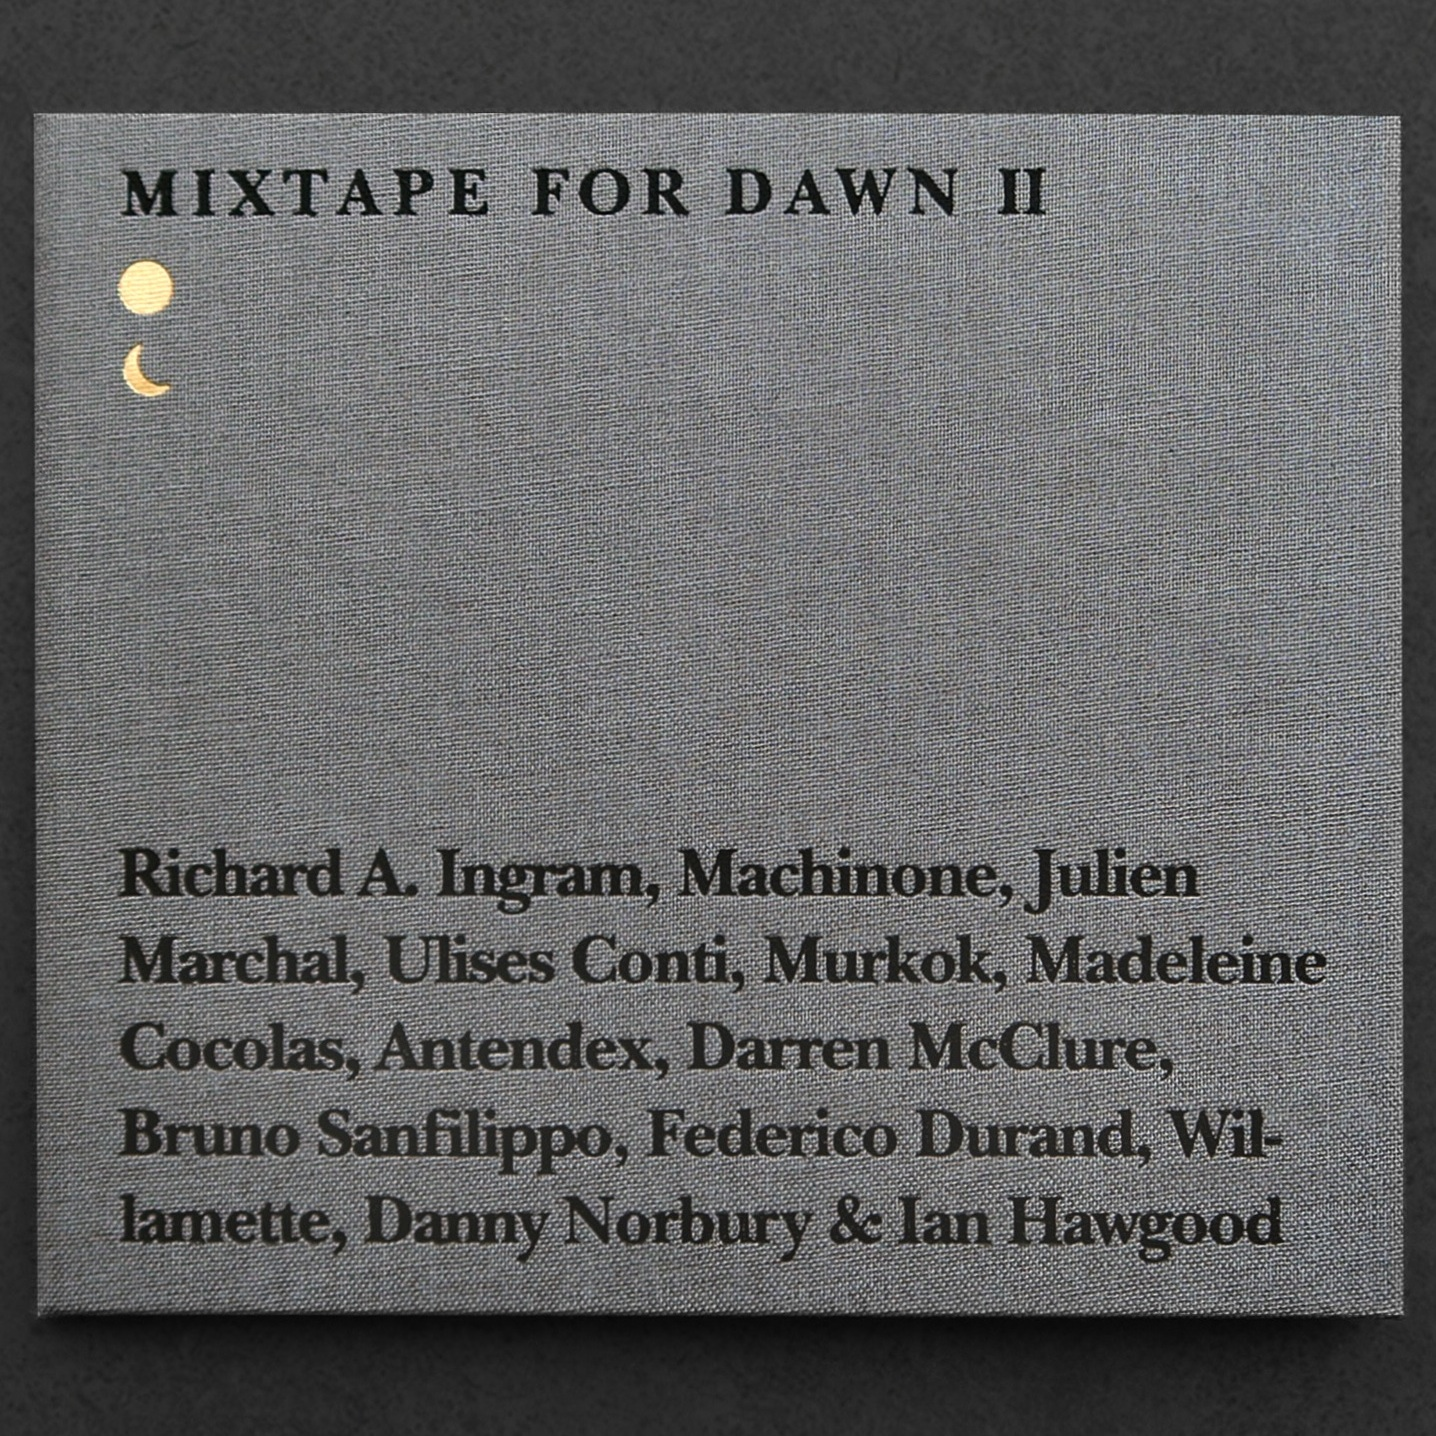 MIXTAPE FOR DAWN II